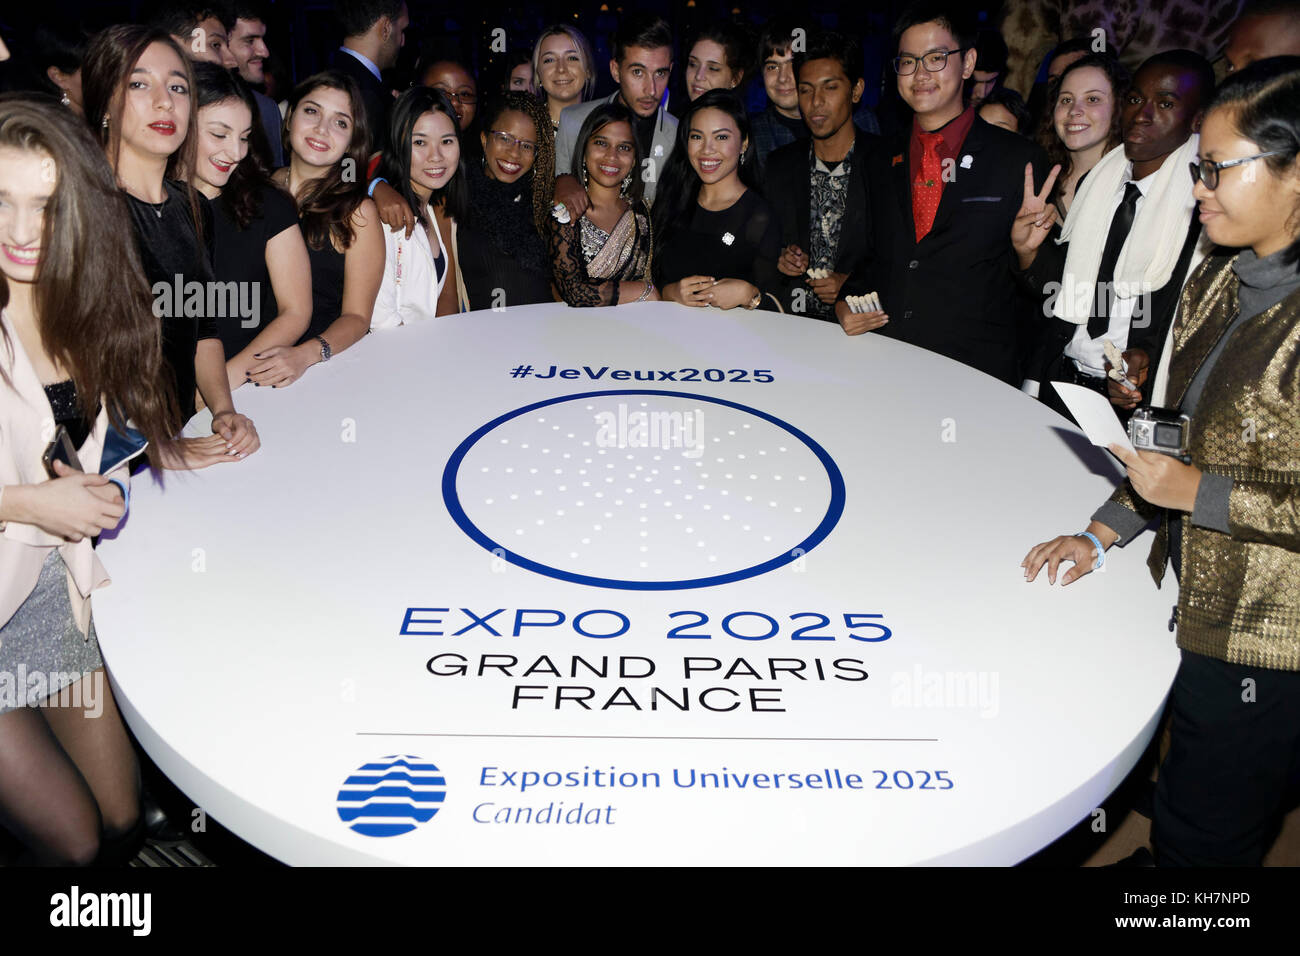 Paris, France. 14th Nov, 2017. Presentation of the project EXPO 2025 GRAND PARIS FRANCE and the 100 young Ambassadors Stock Photo